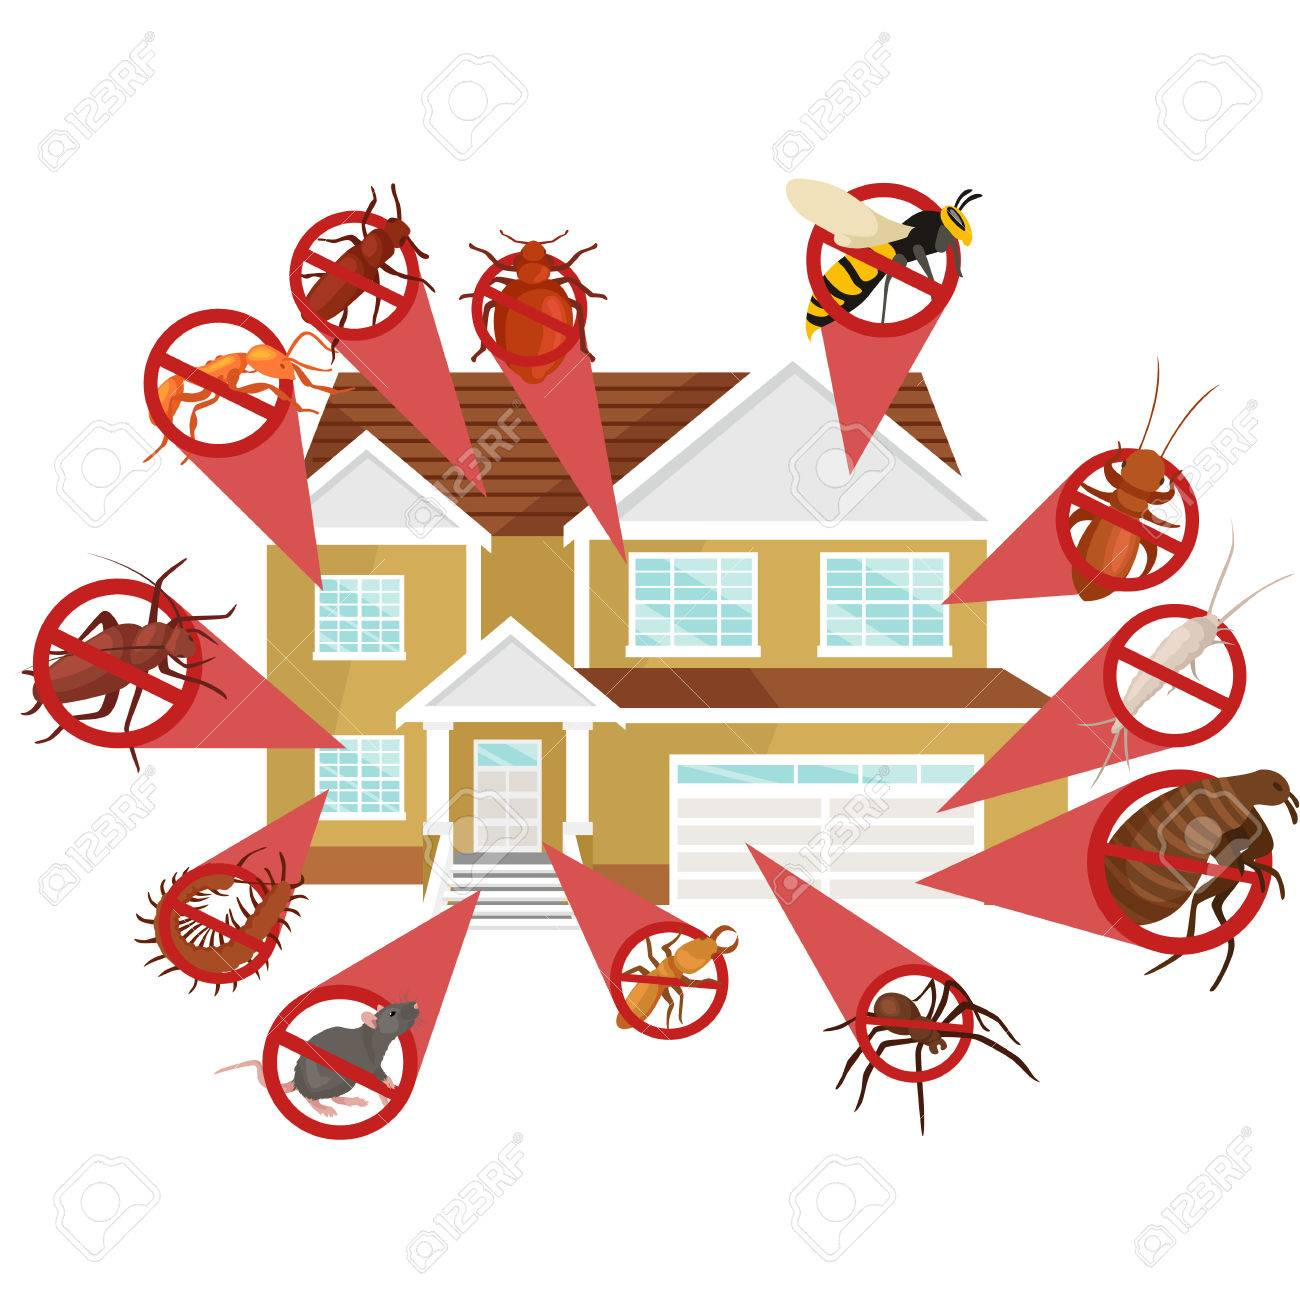 Pest control concept with insects exterminator silhouette flat vector illustration set - 57438093